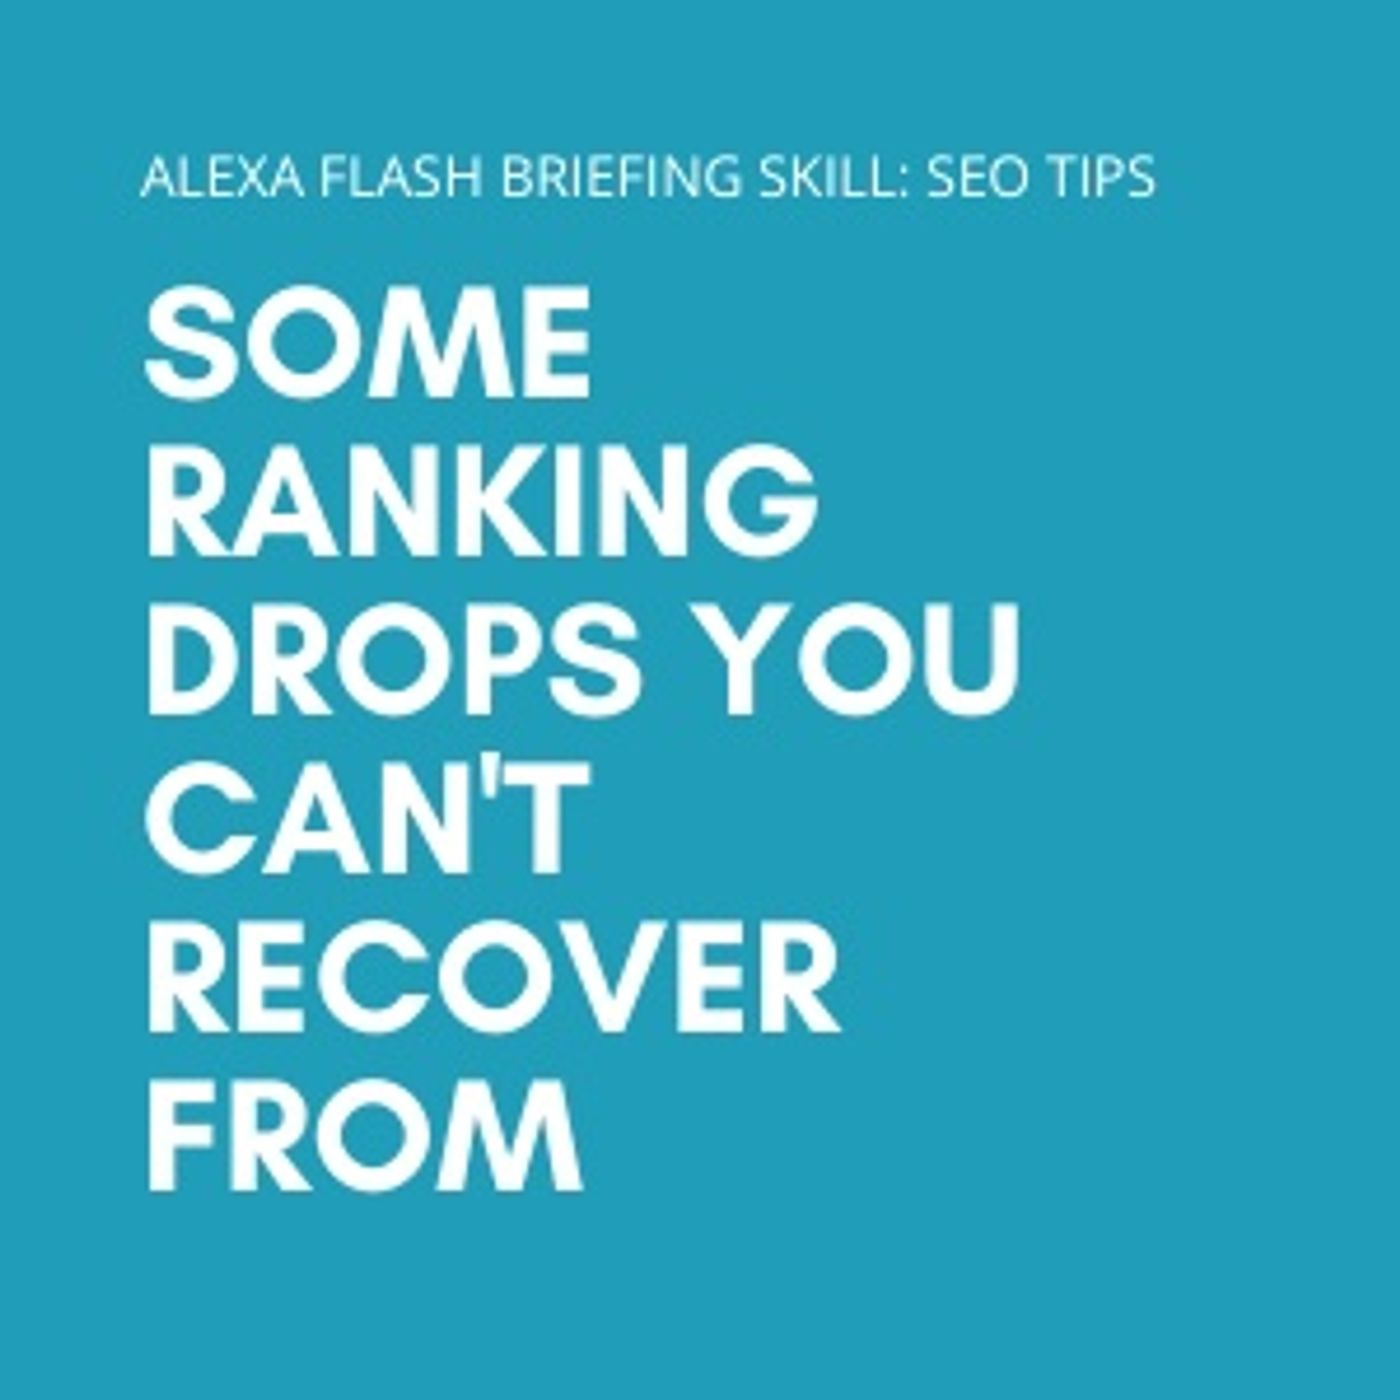 Some ranking drops you can't recover from